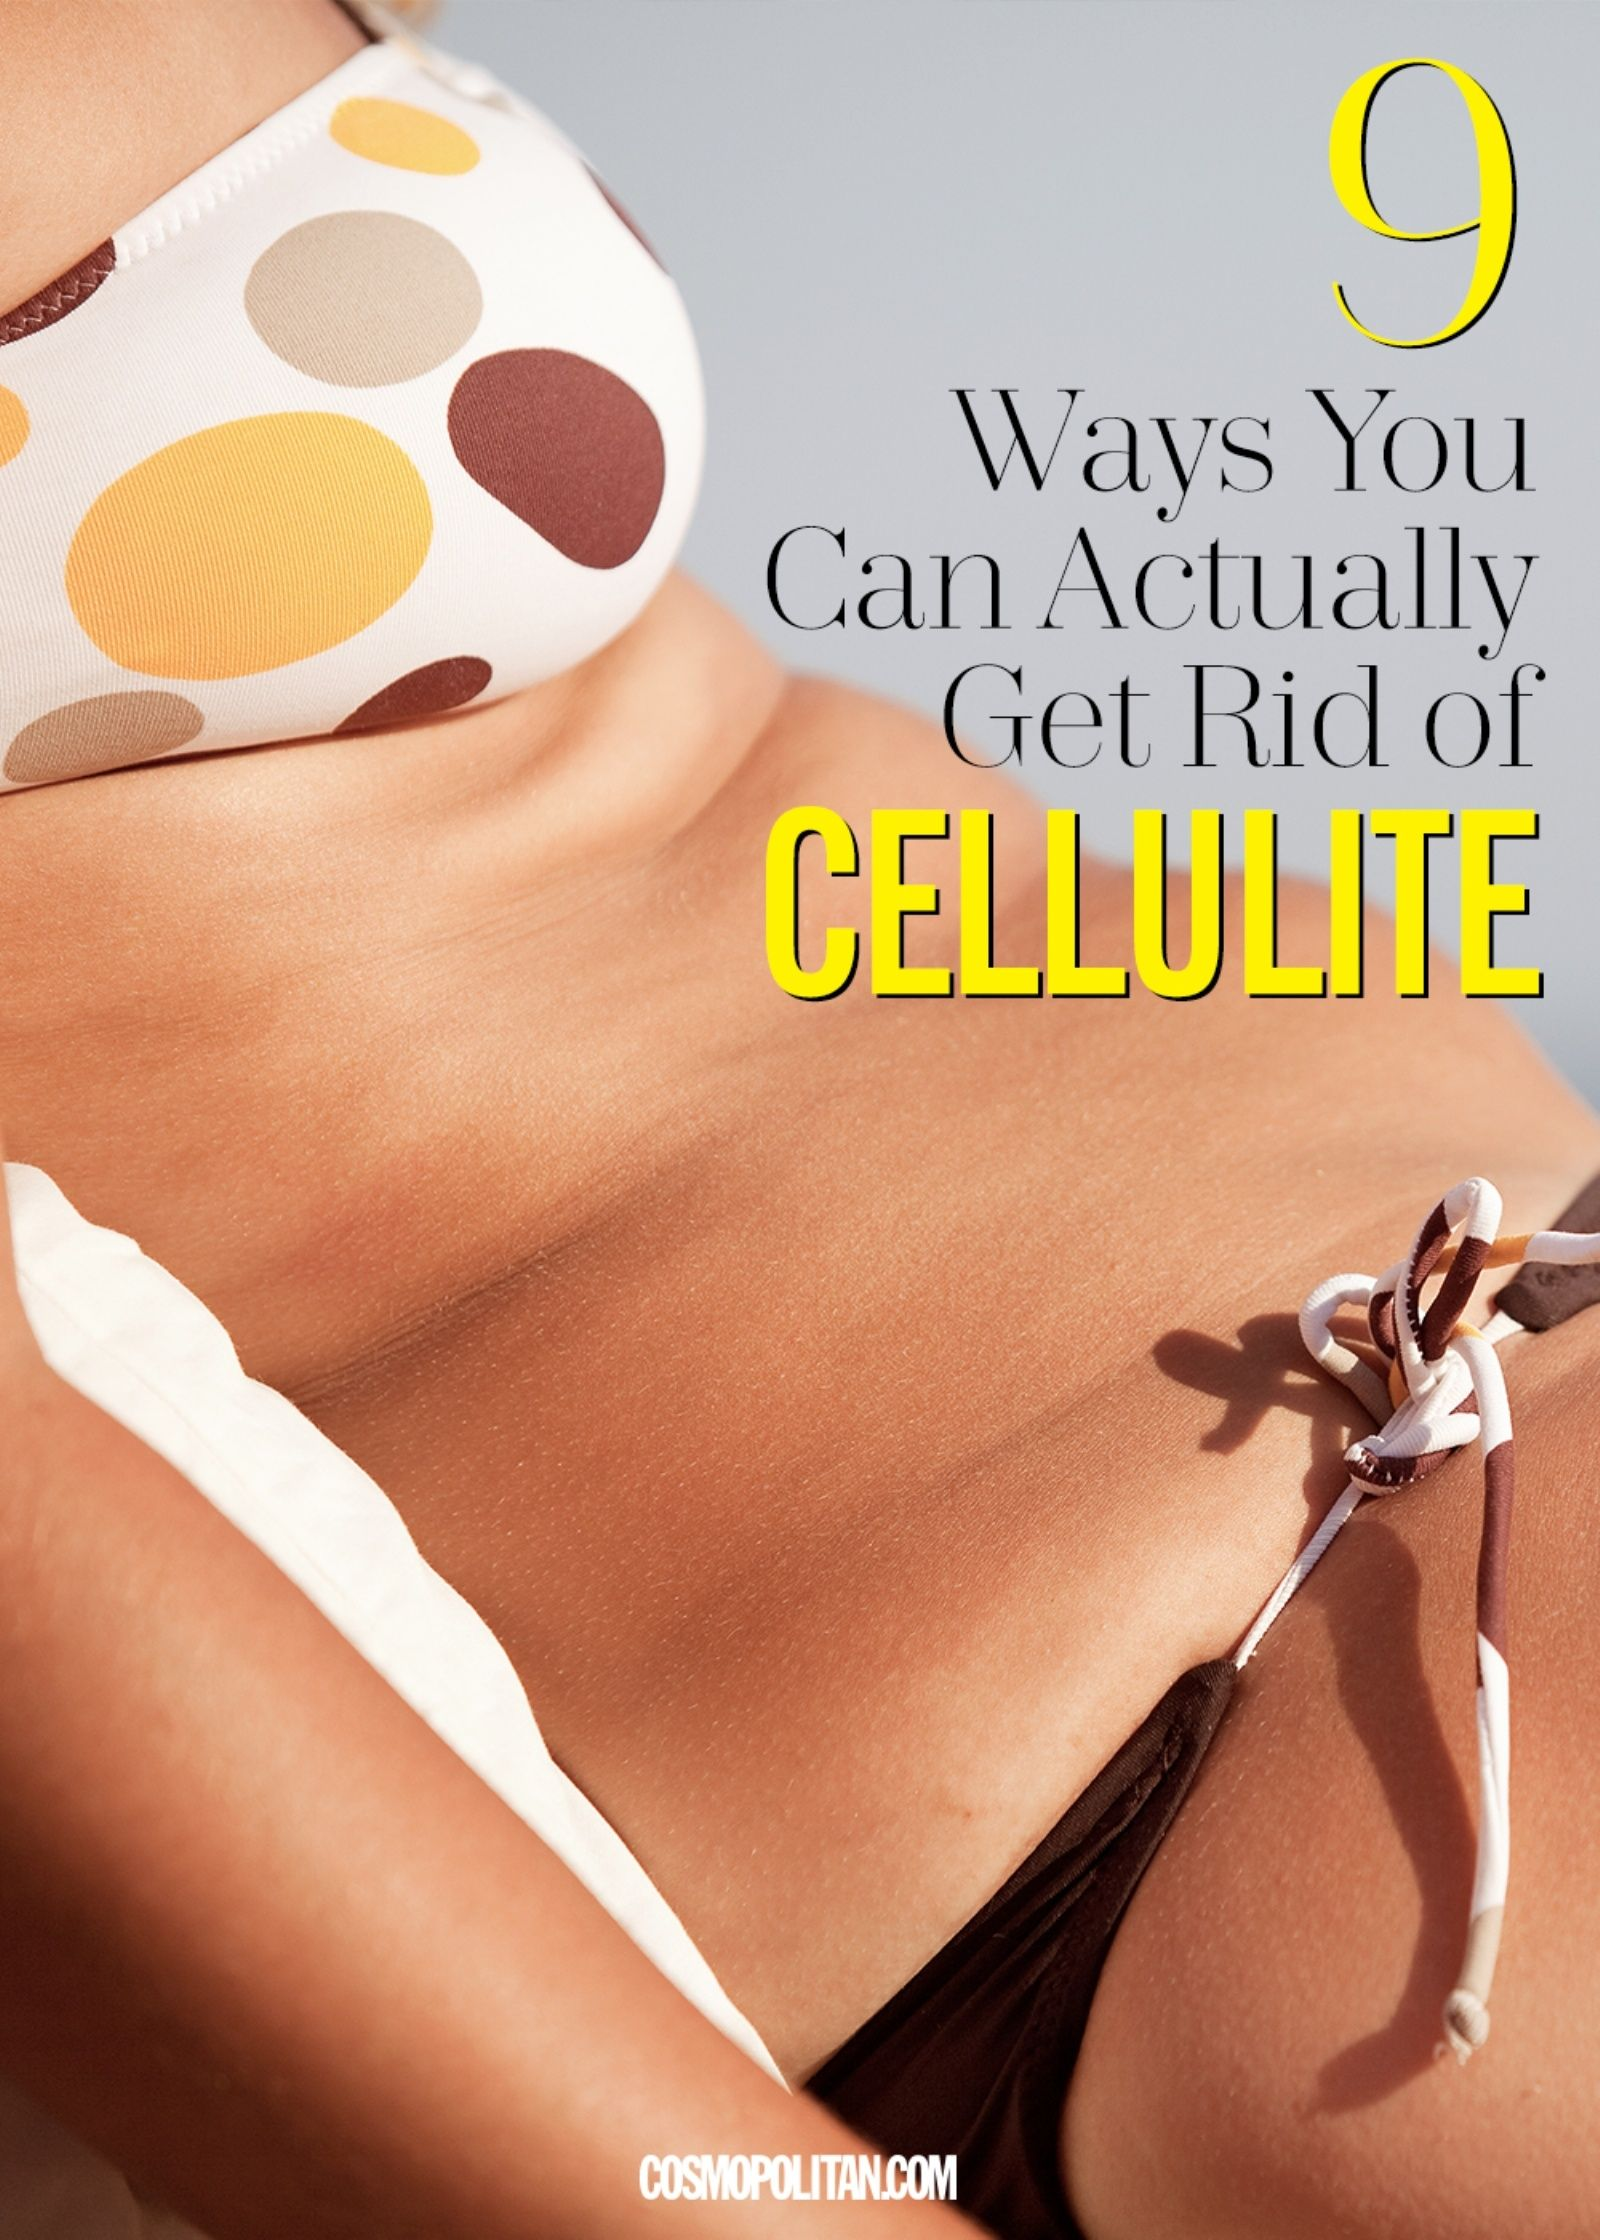 Ways You Can Actually Get Rid of Cellulite  Cosmopolitan